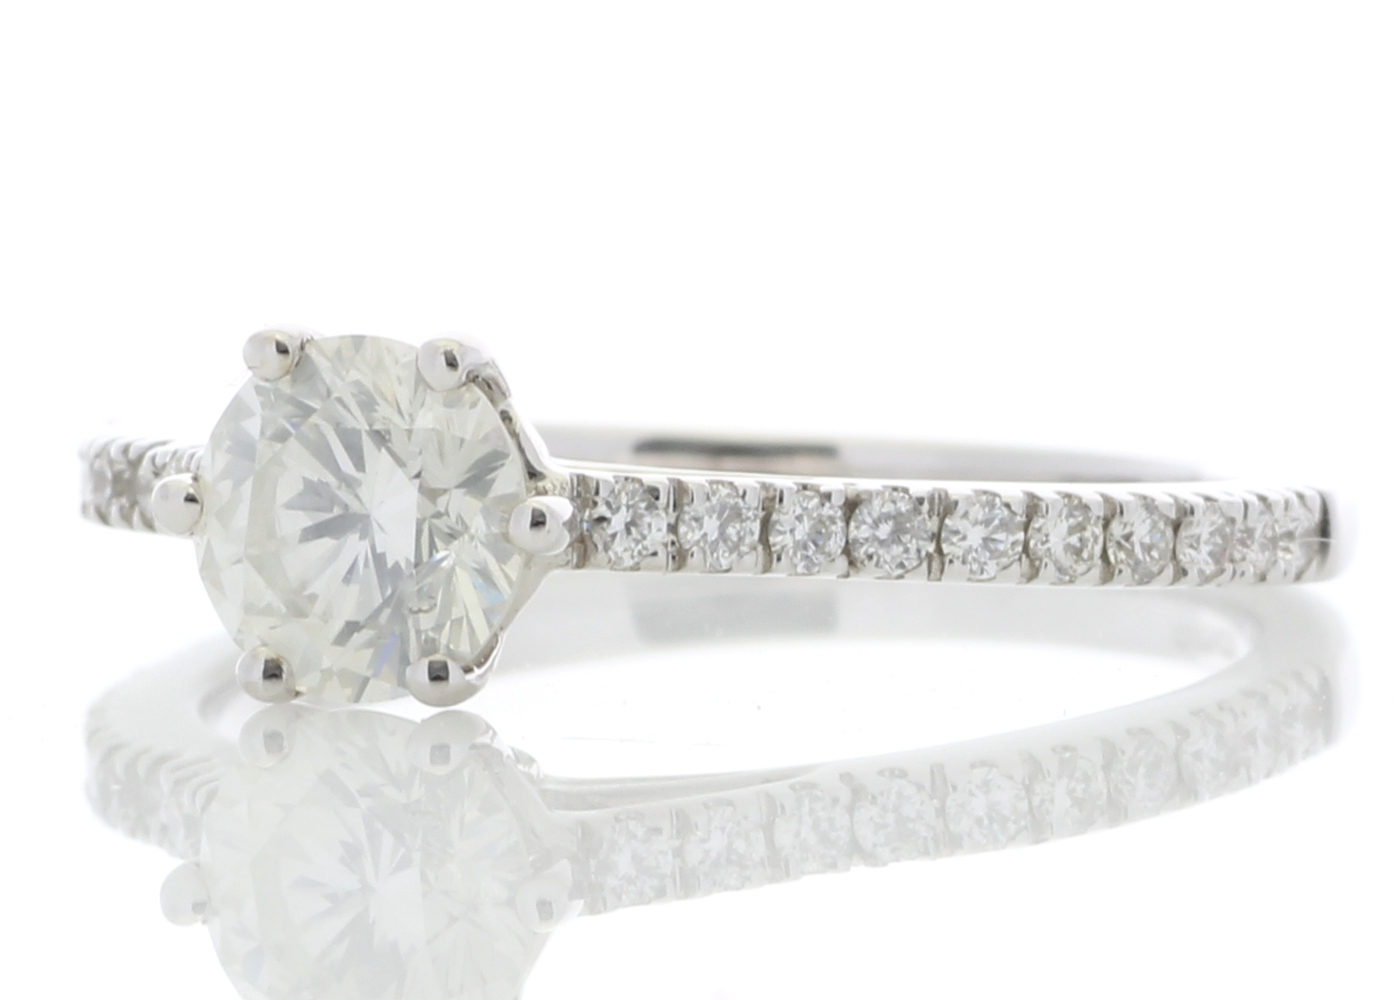 18ct White Gold Solitaire Diamond ring With Stone Set Shoulders 0.90 Carats - Image 2 of 5